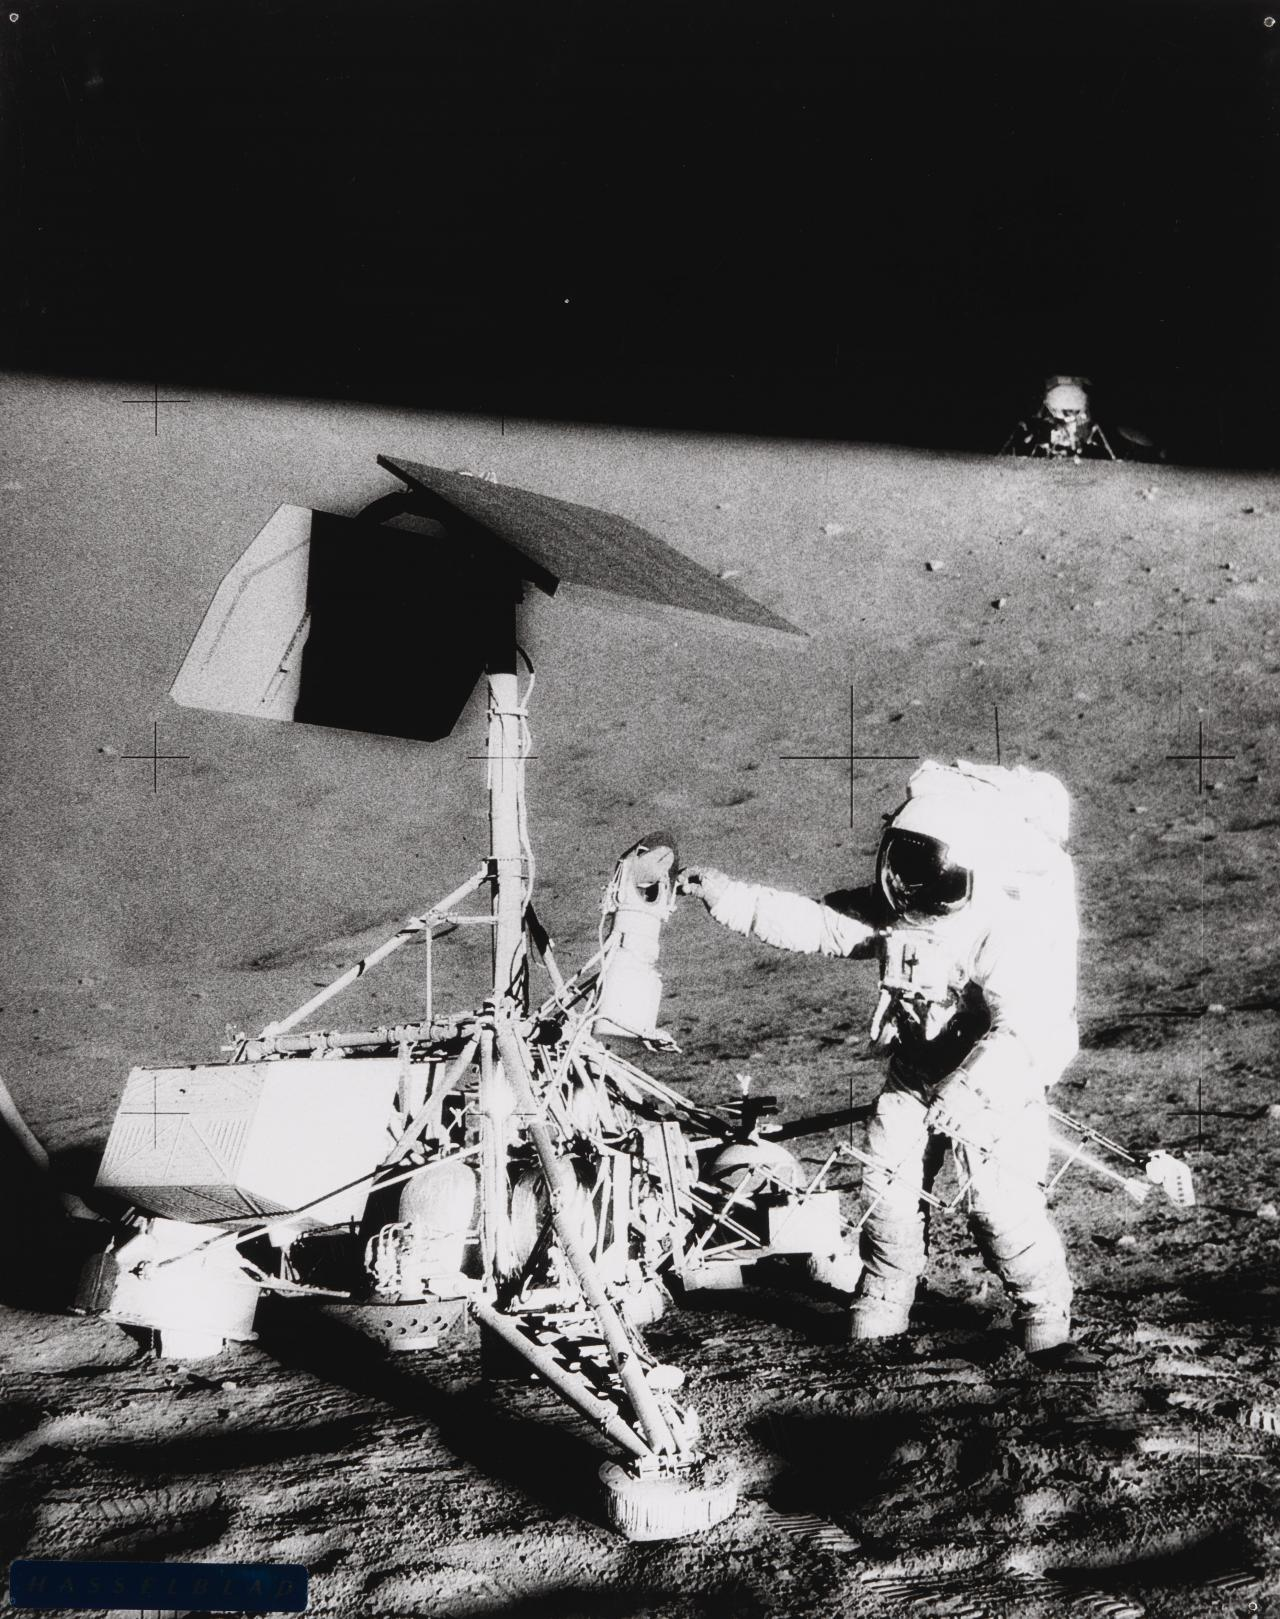 Astronaut inspecting Surveyor 3, Unmanned craft resting on moon since April 1967